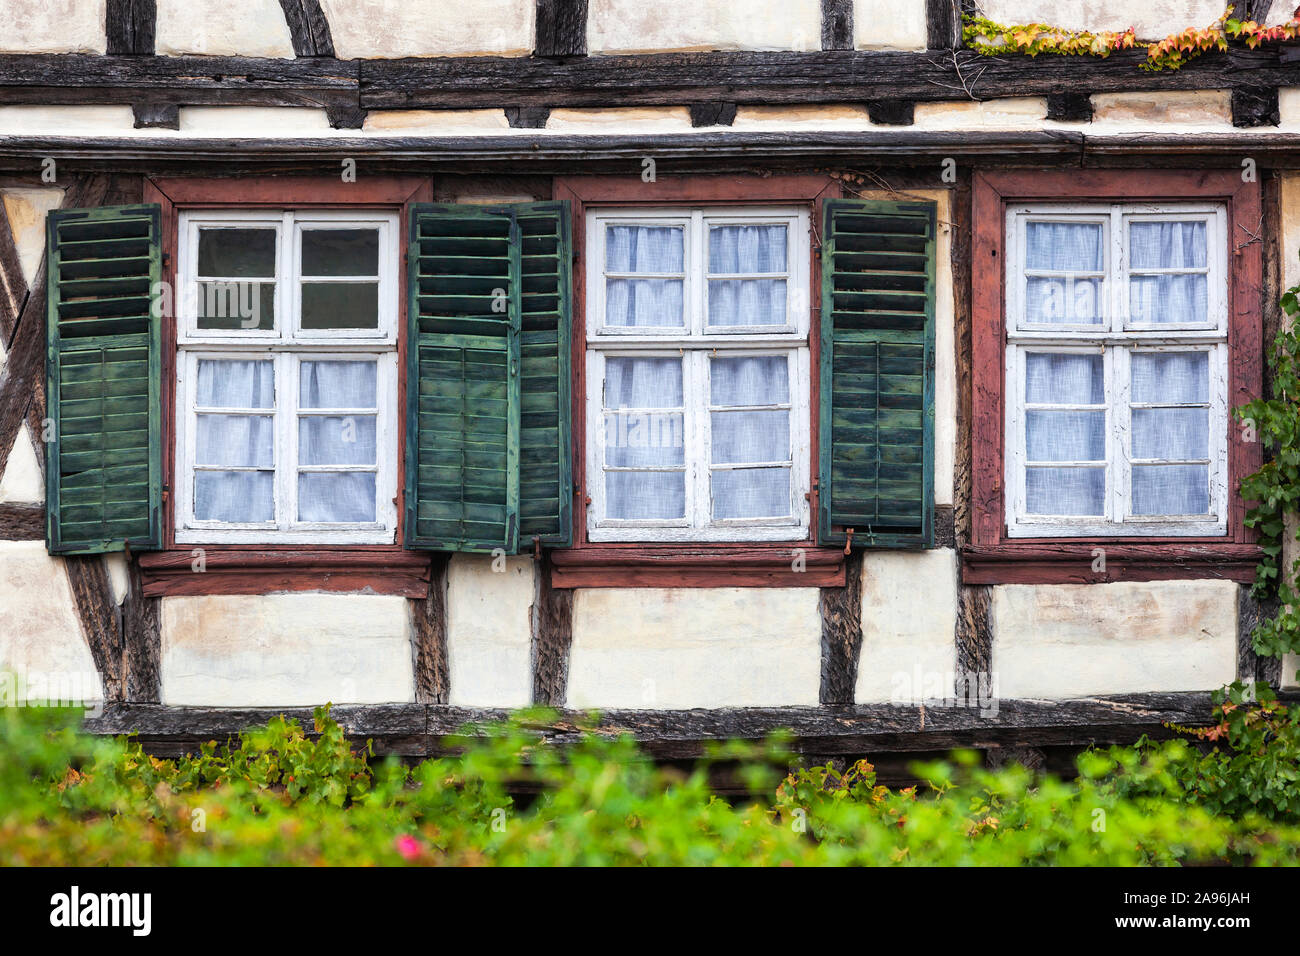 Old Vintage Window With Green Shutters Of A Half Timbered